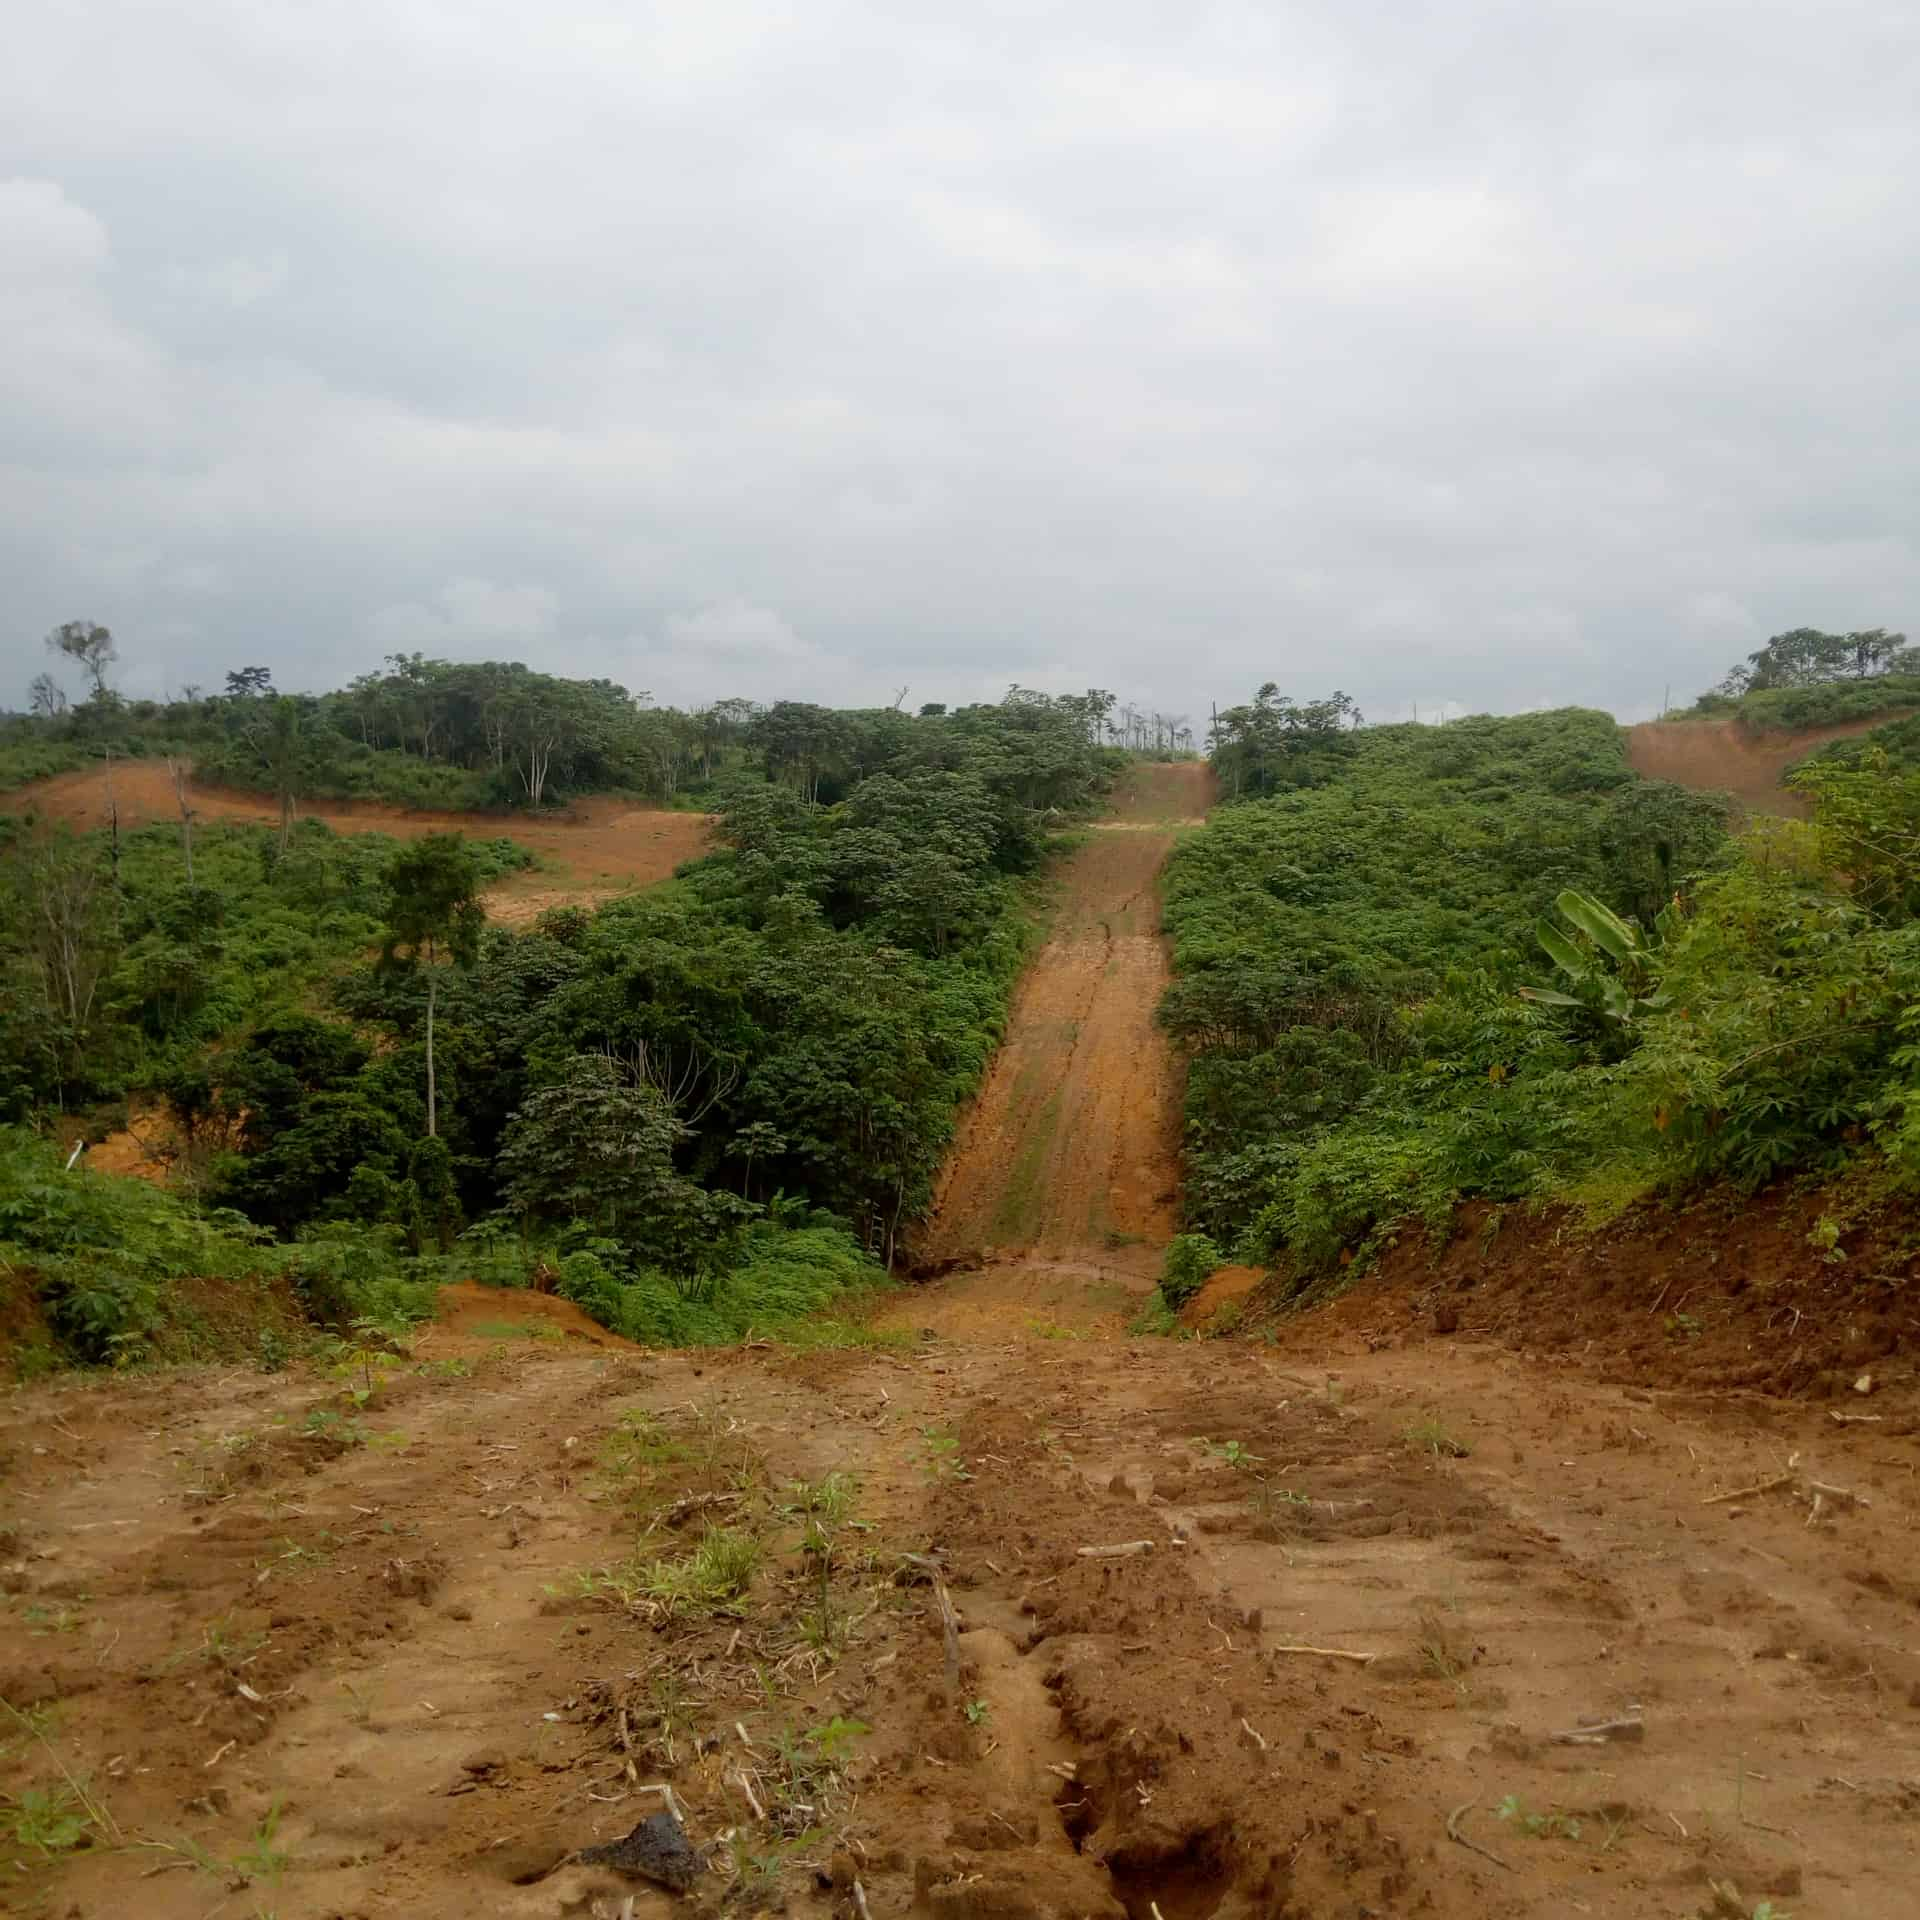 Land for sale at Douala, Lendi, Logement canadien,limite gombe - 400000 m2 - 50 000 000 FCFA